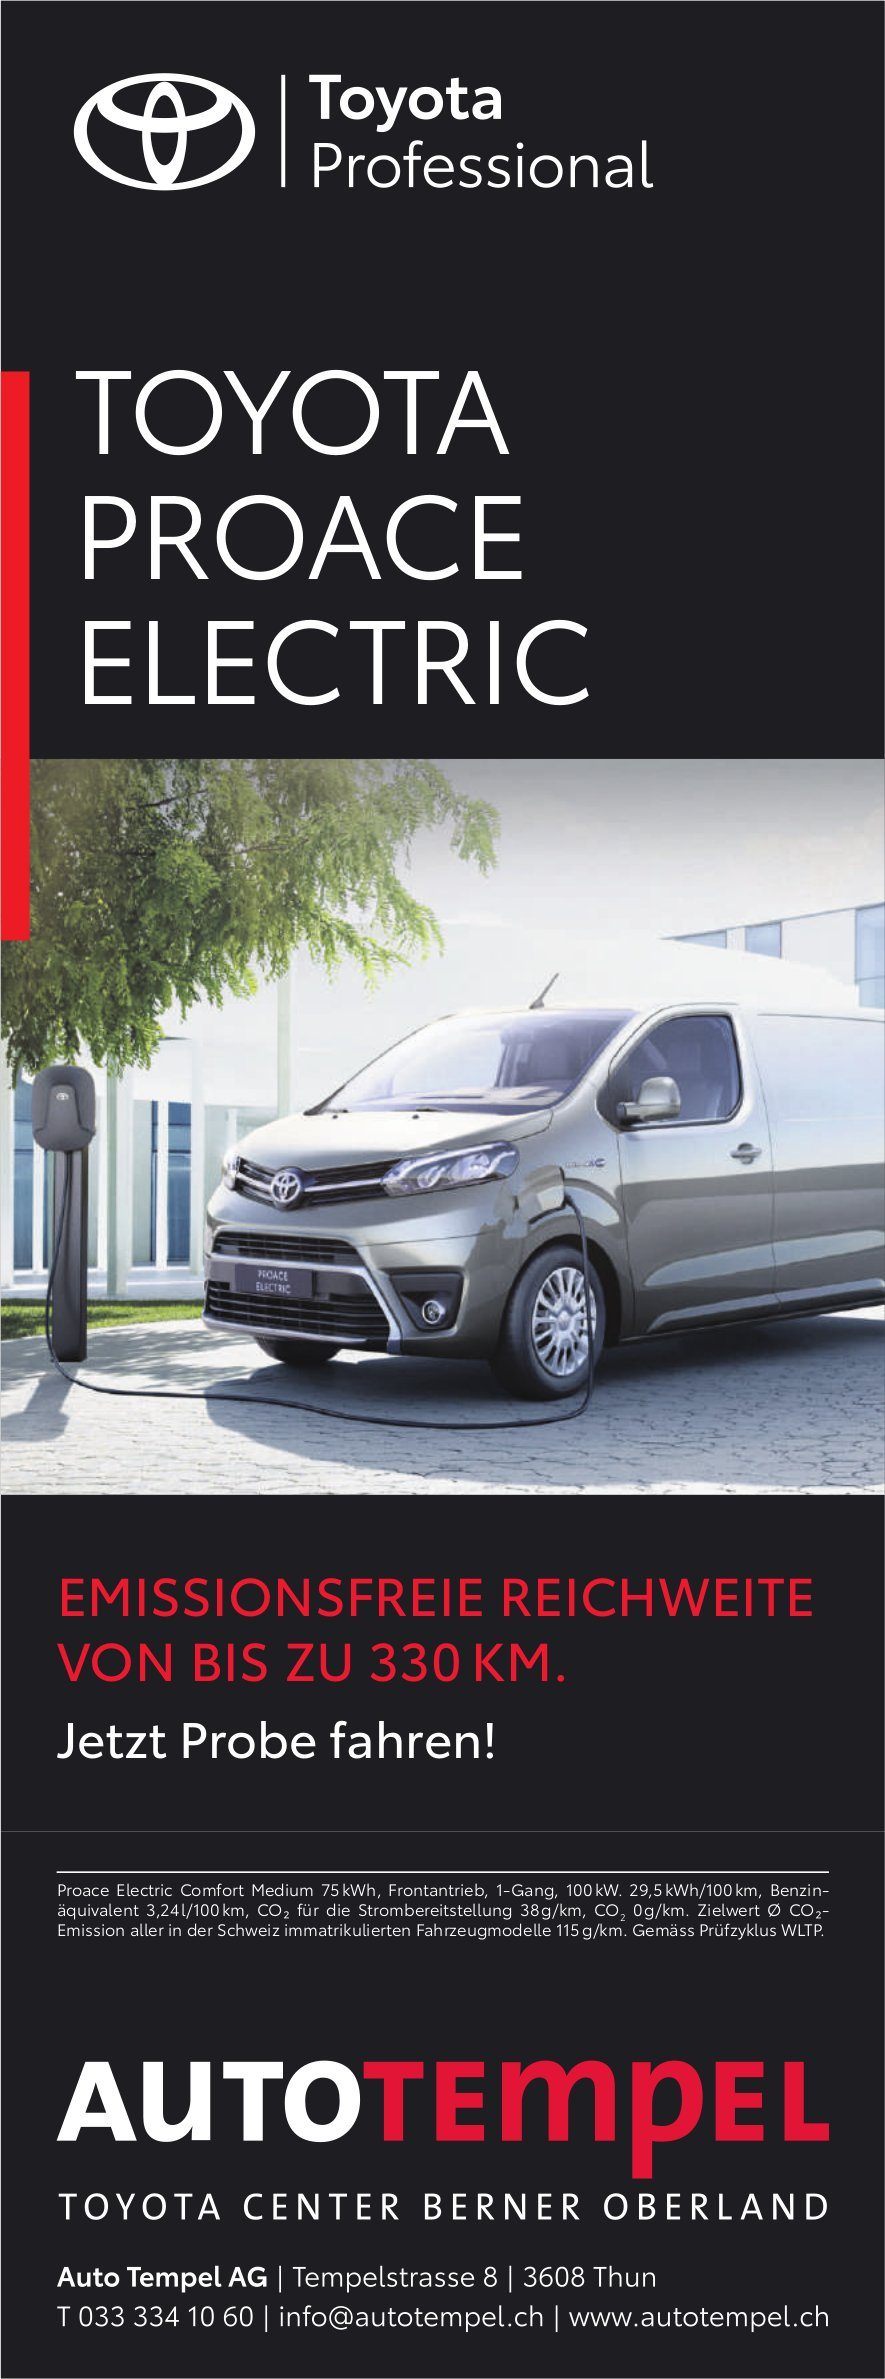 Autotempel AG, Thun - Toyota Proace Electric